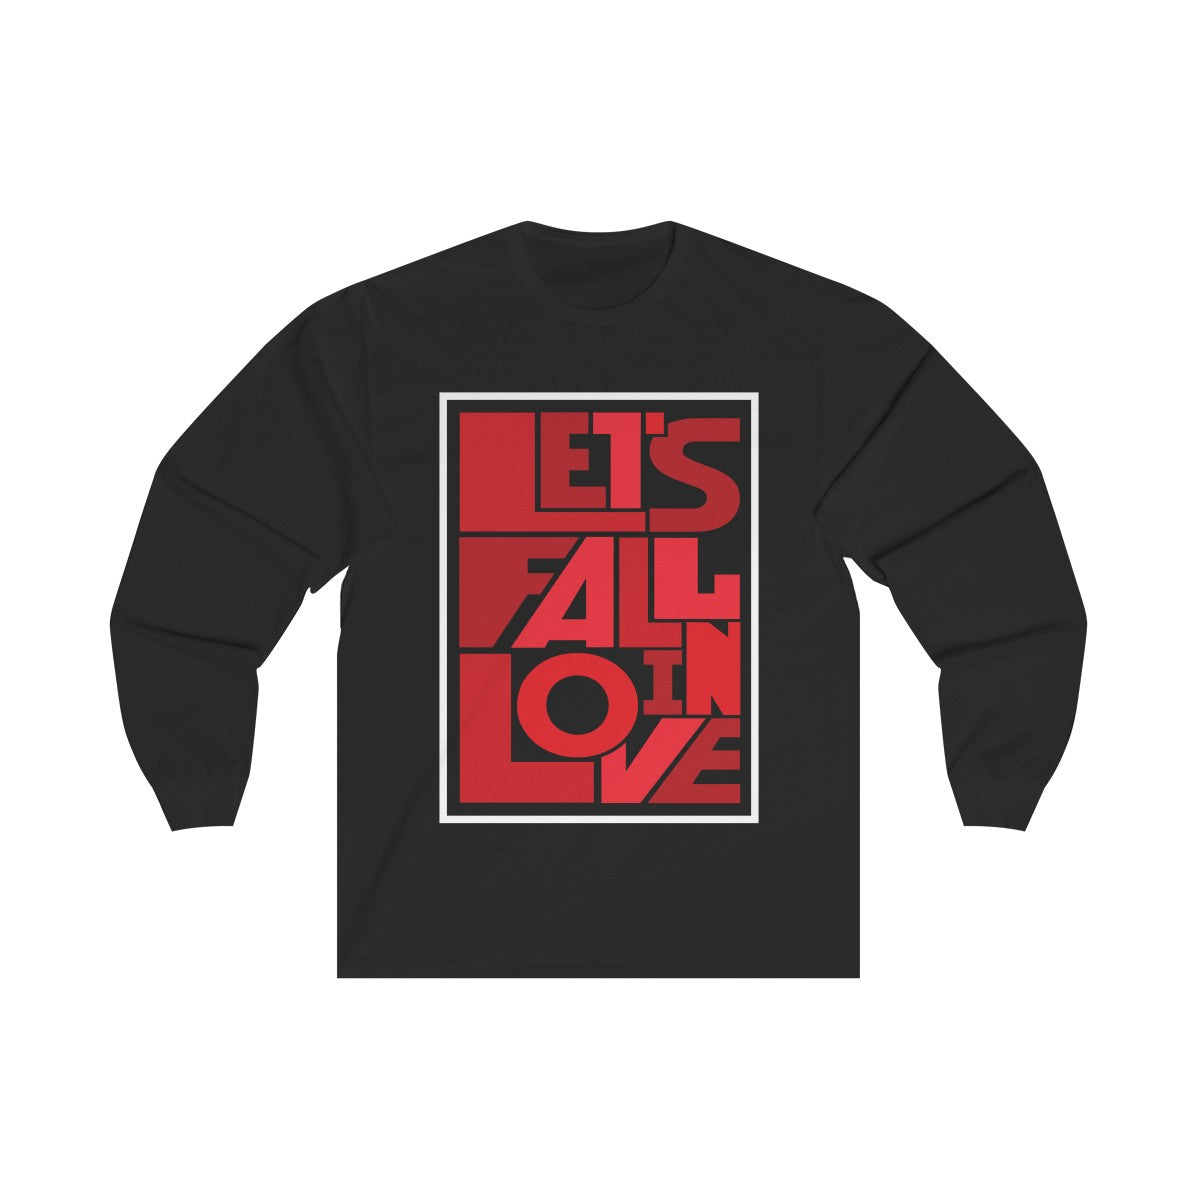 Lets Fall In Love Unisex Long Sleeve Shirt